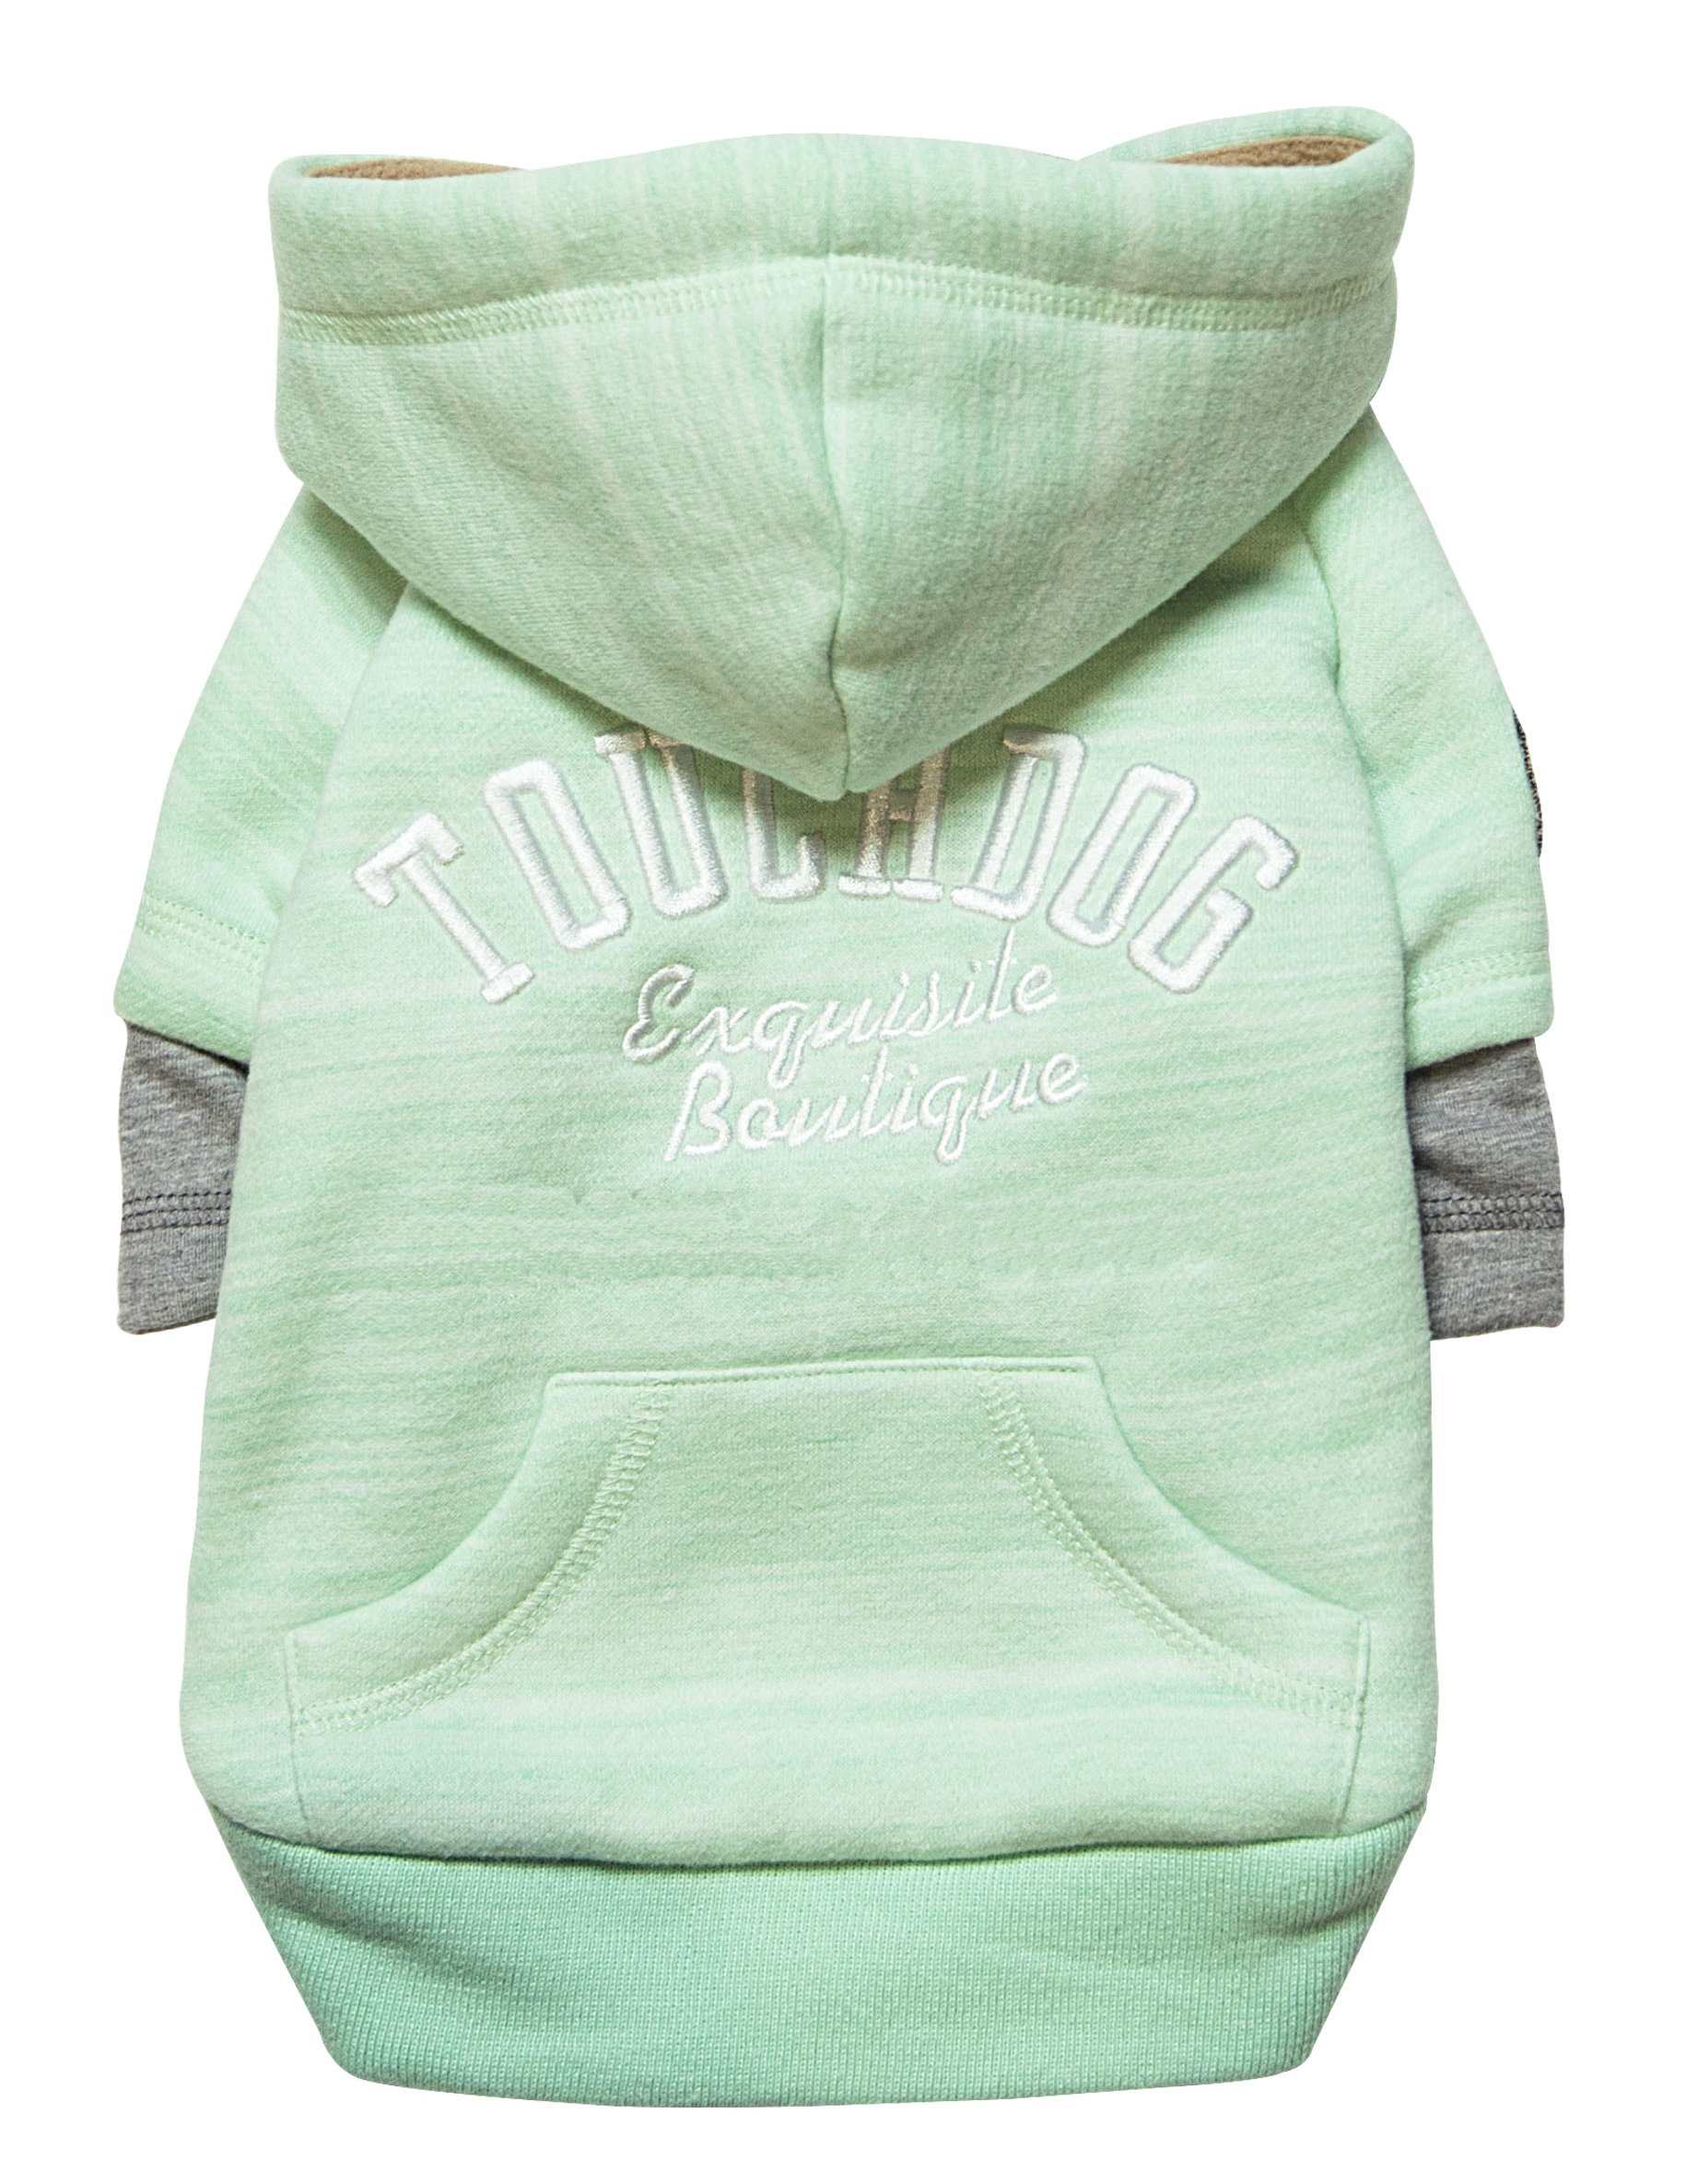 TOUCHDOG 'Hampton Beach' Designer Fashion Ultra-Plush Sand Blasted Pet Dog Hooded Sweater Hoodie, Large, Green